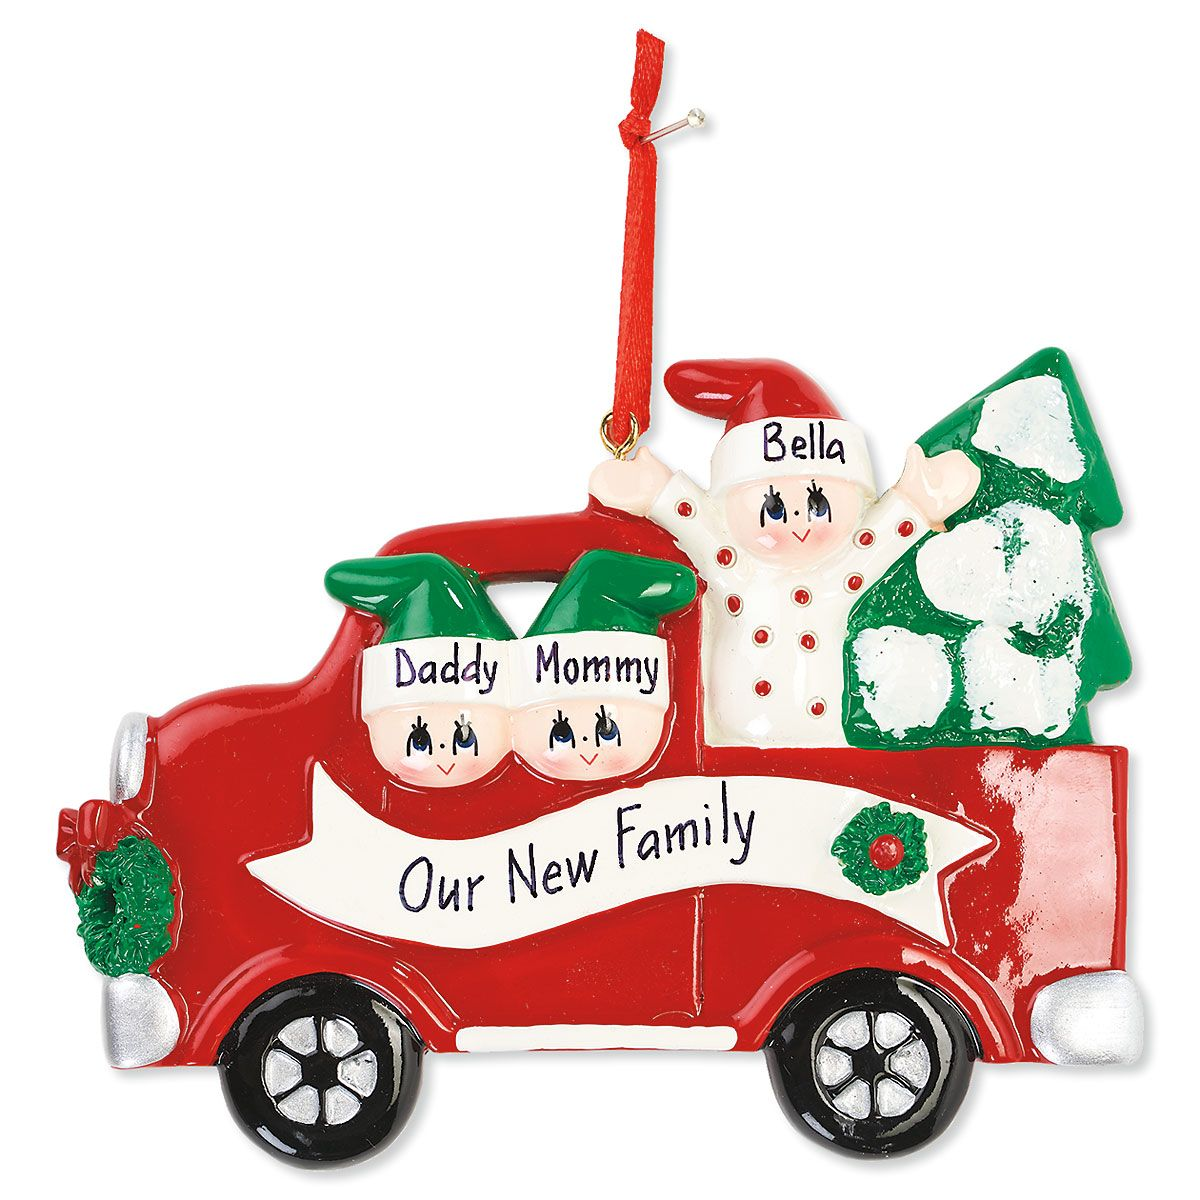 Red Truck with Christmas Tree Hand-Lettered Christmas Ornament